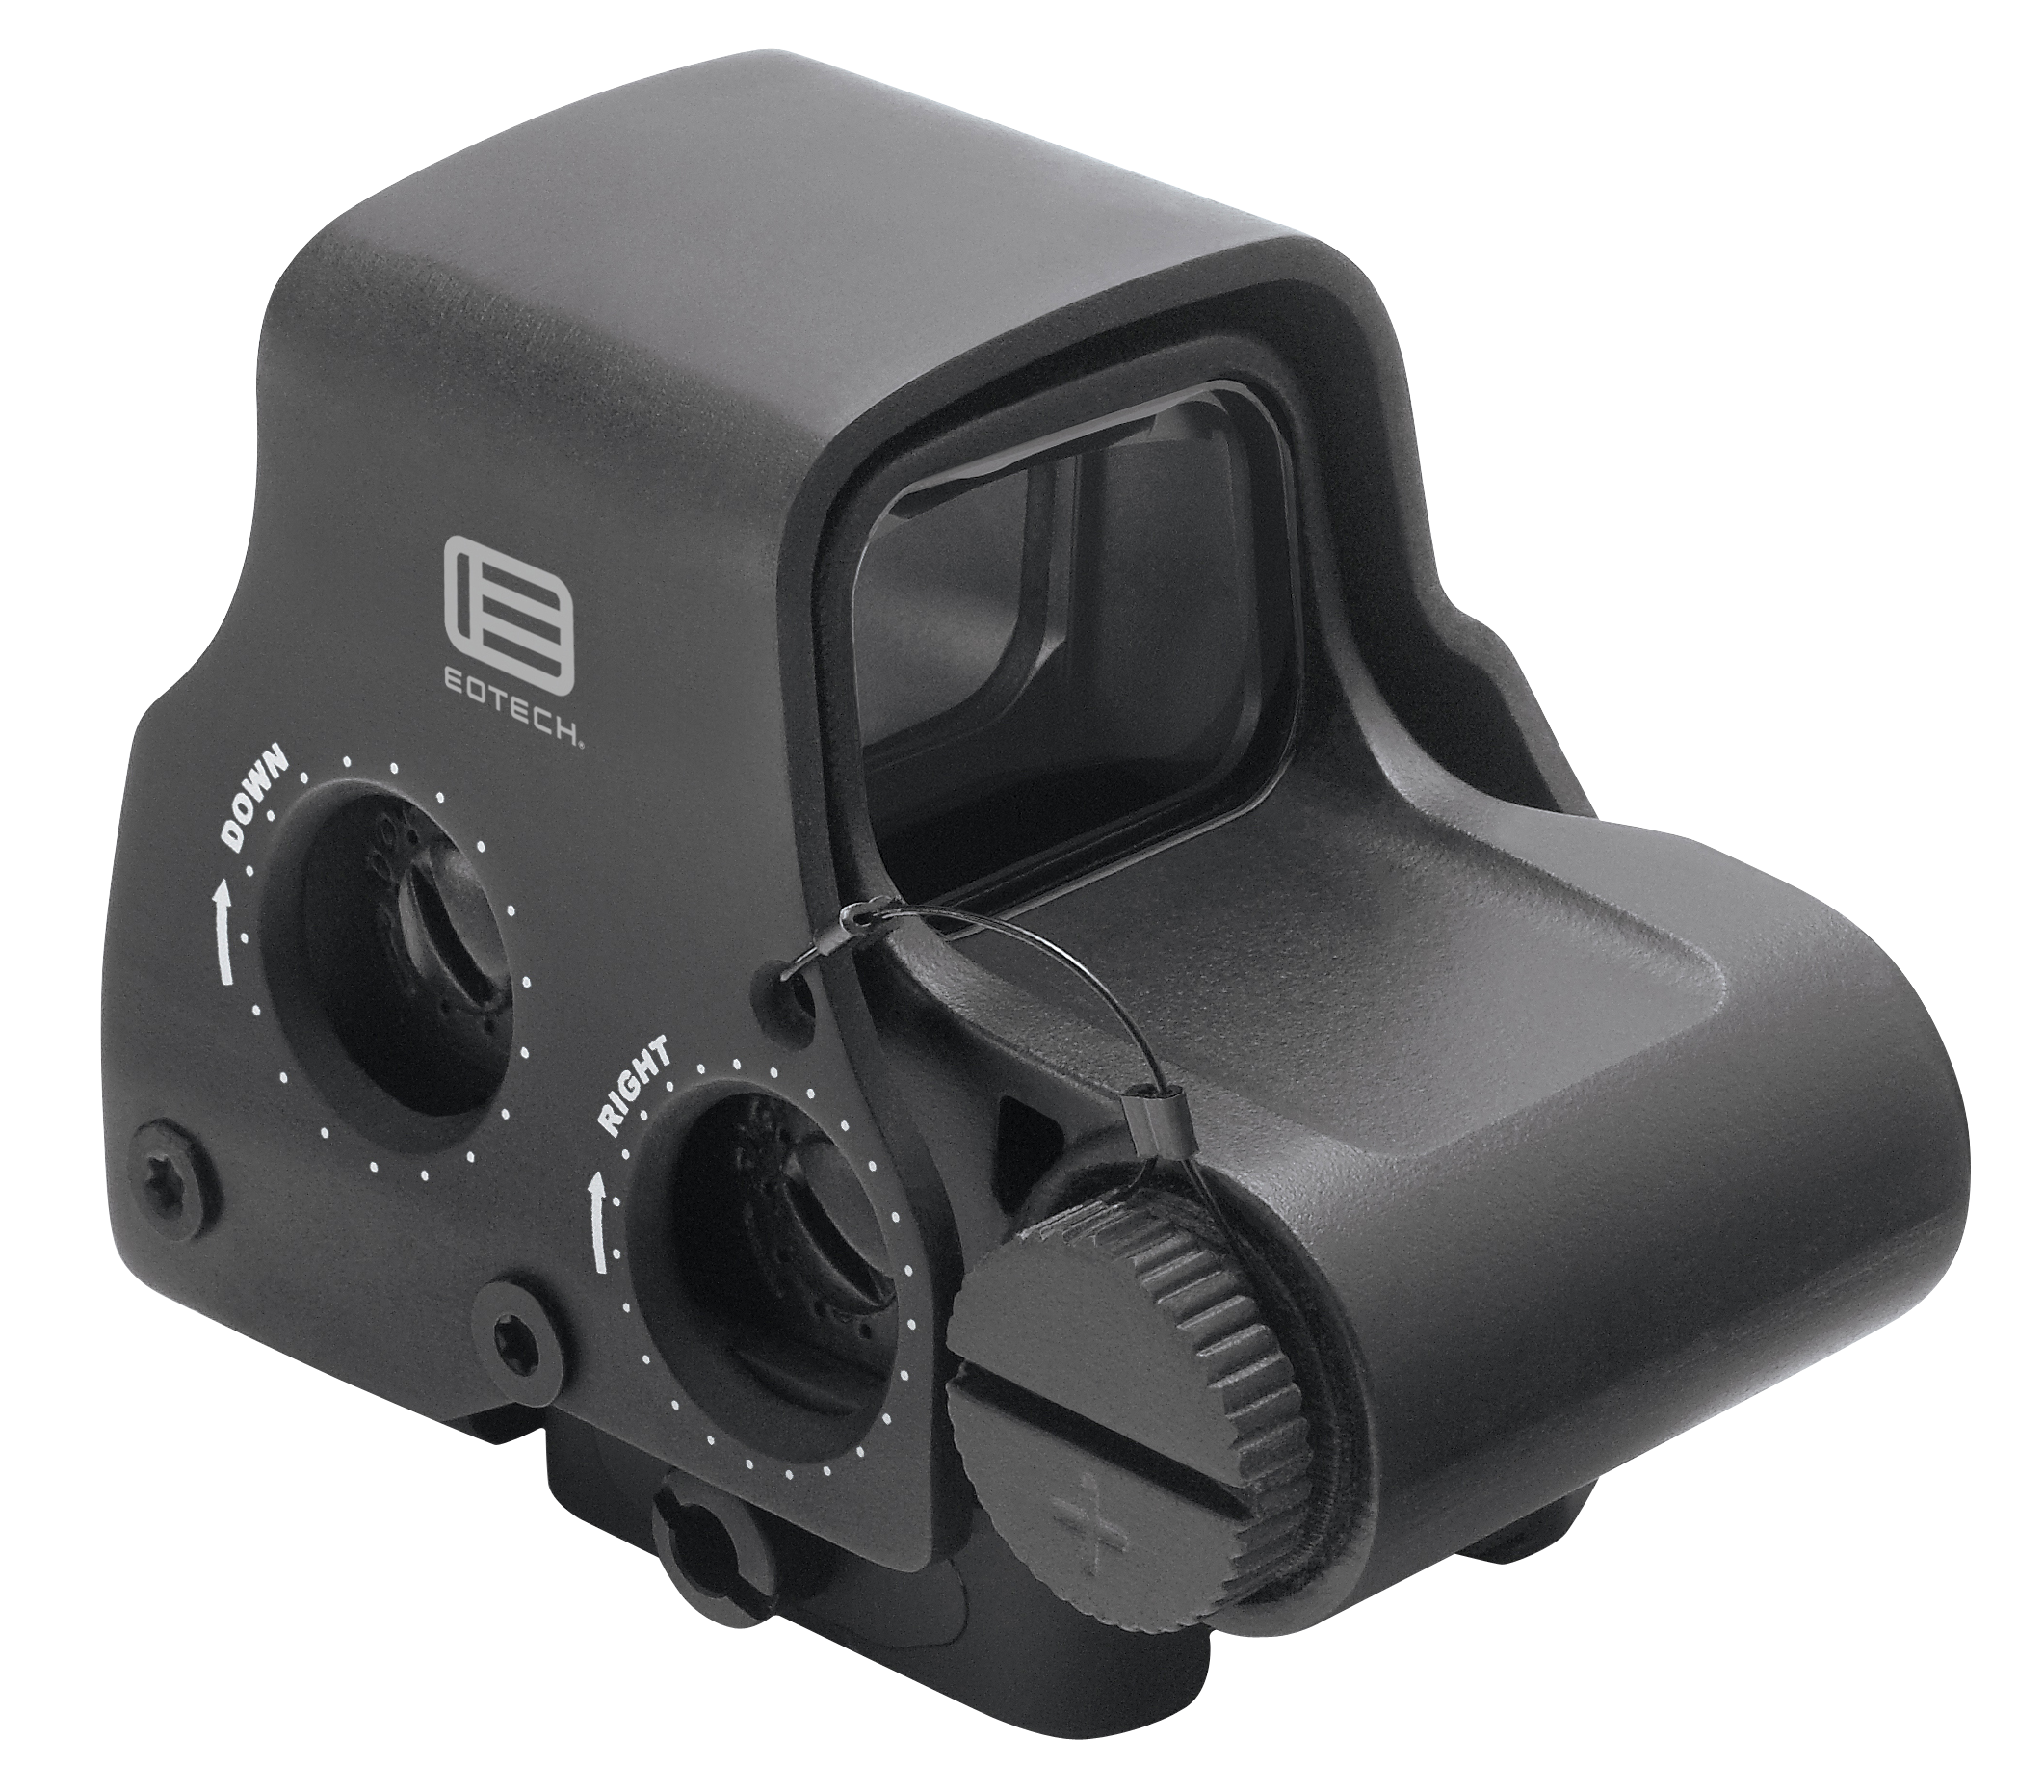 Eotech EXPS30 EXPS3 1x 30x23mm Obj Unlimited Eye Relief 1 MOA Black